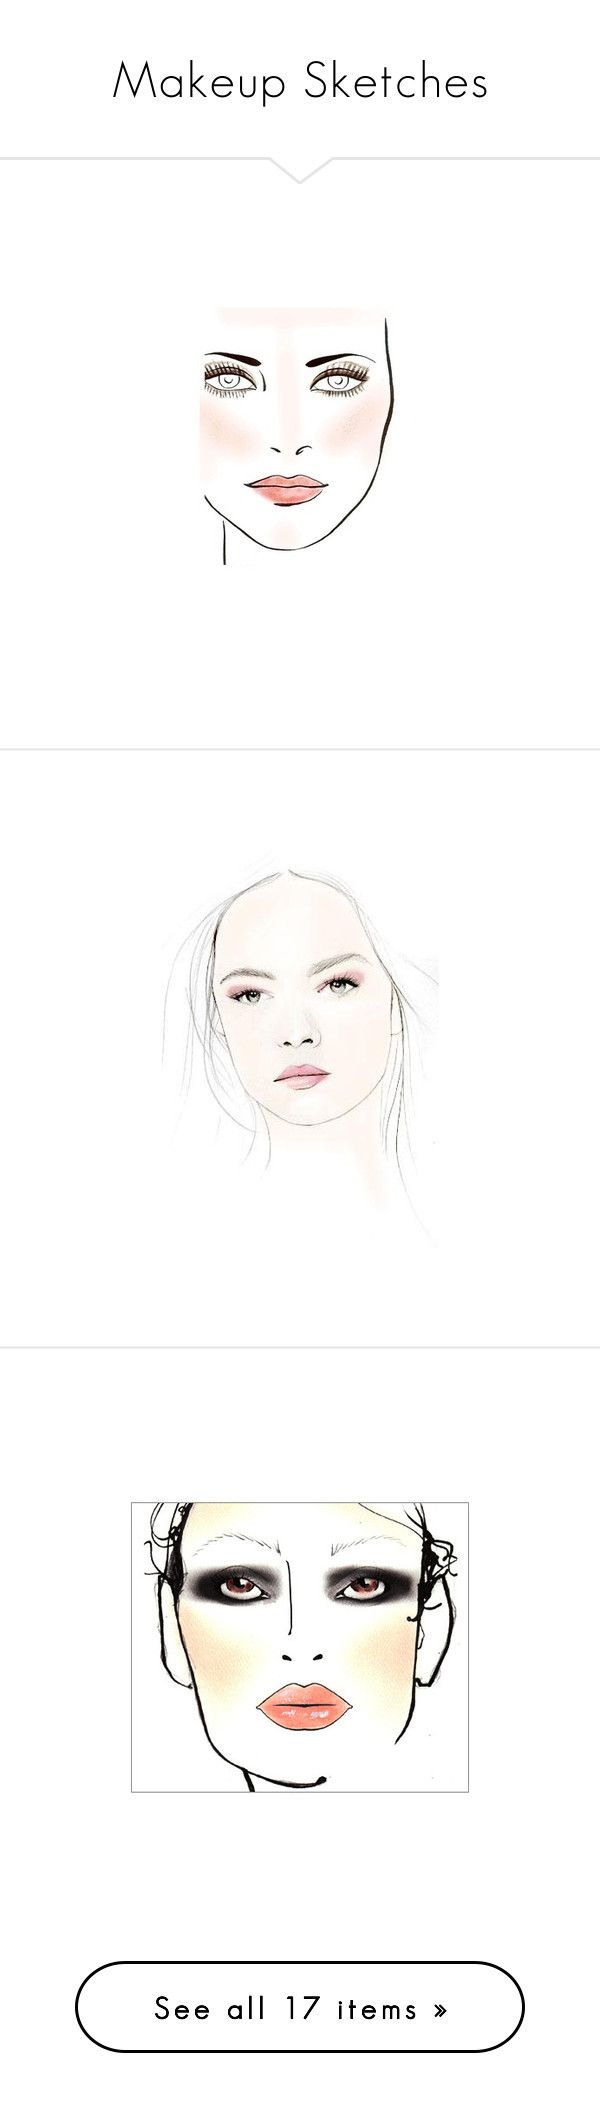 """Makeup Sketches"" by sparklekittygirl ❤ liked on Polyvore featuring backgrounds, drawings, people, sketches, art, mac, sketch, beauty products, makeup and maybelline makeup"